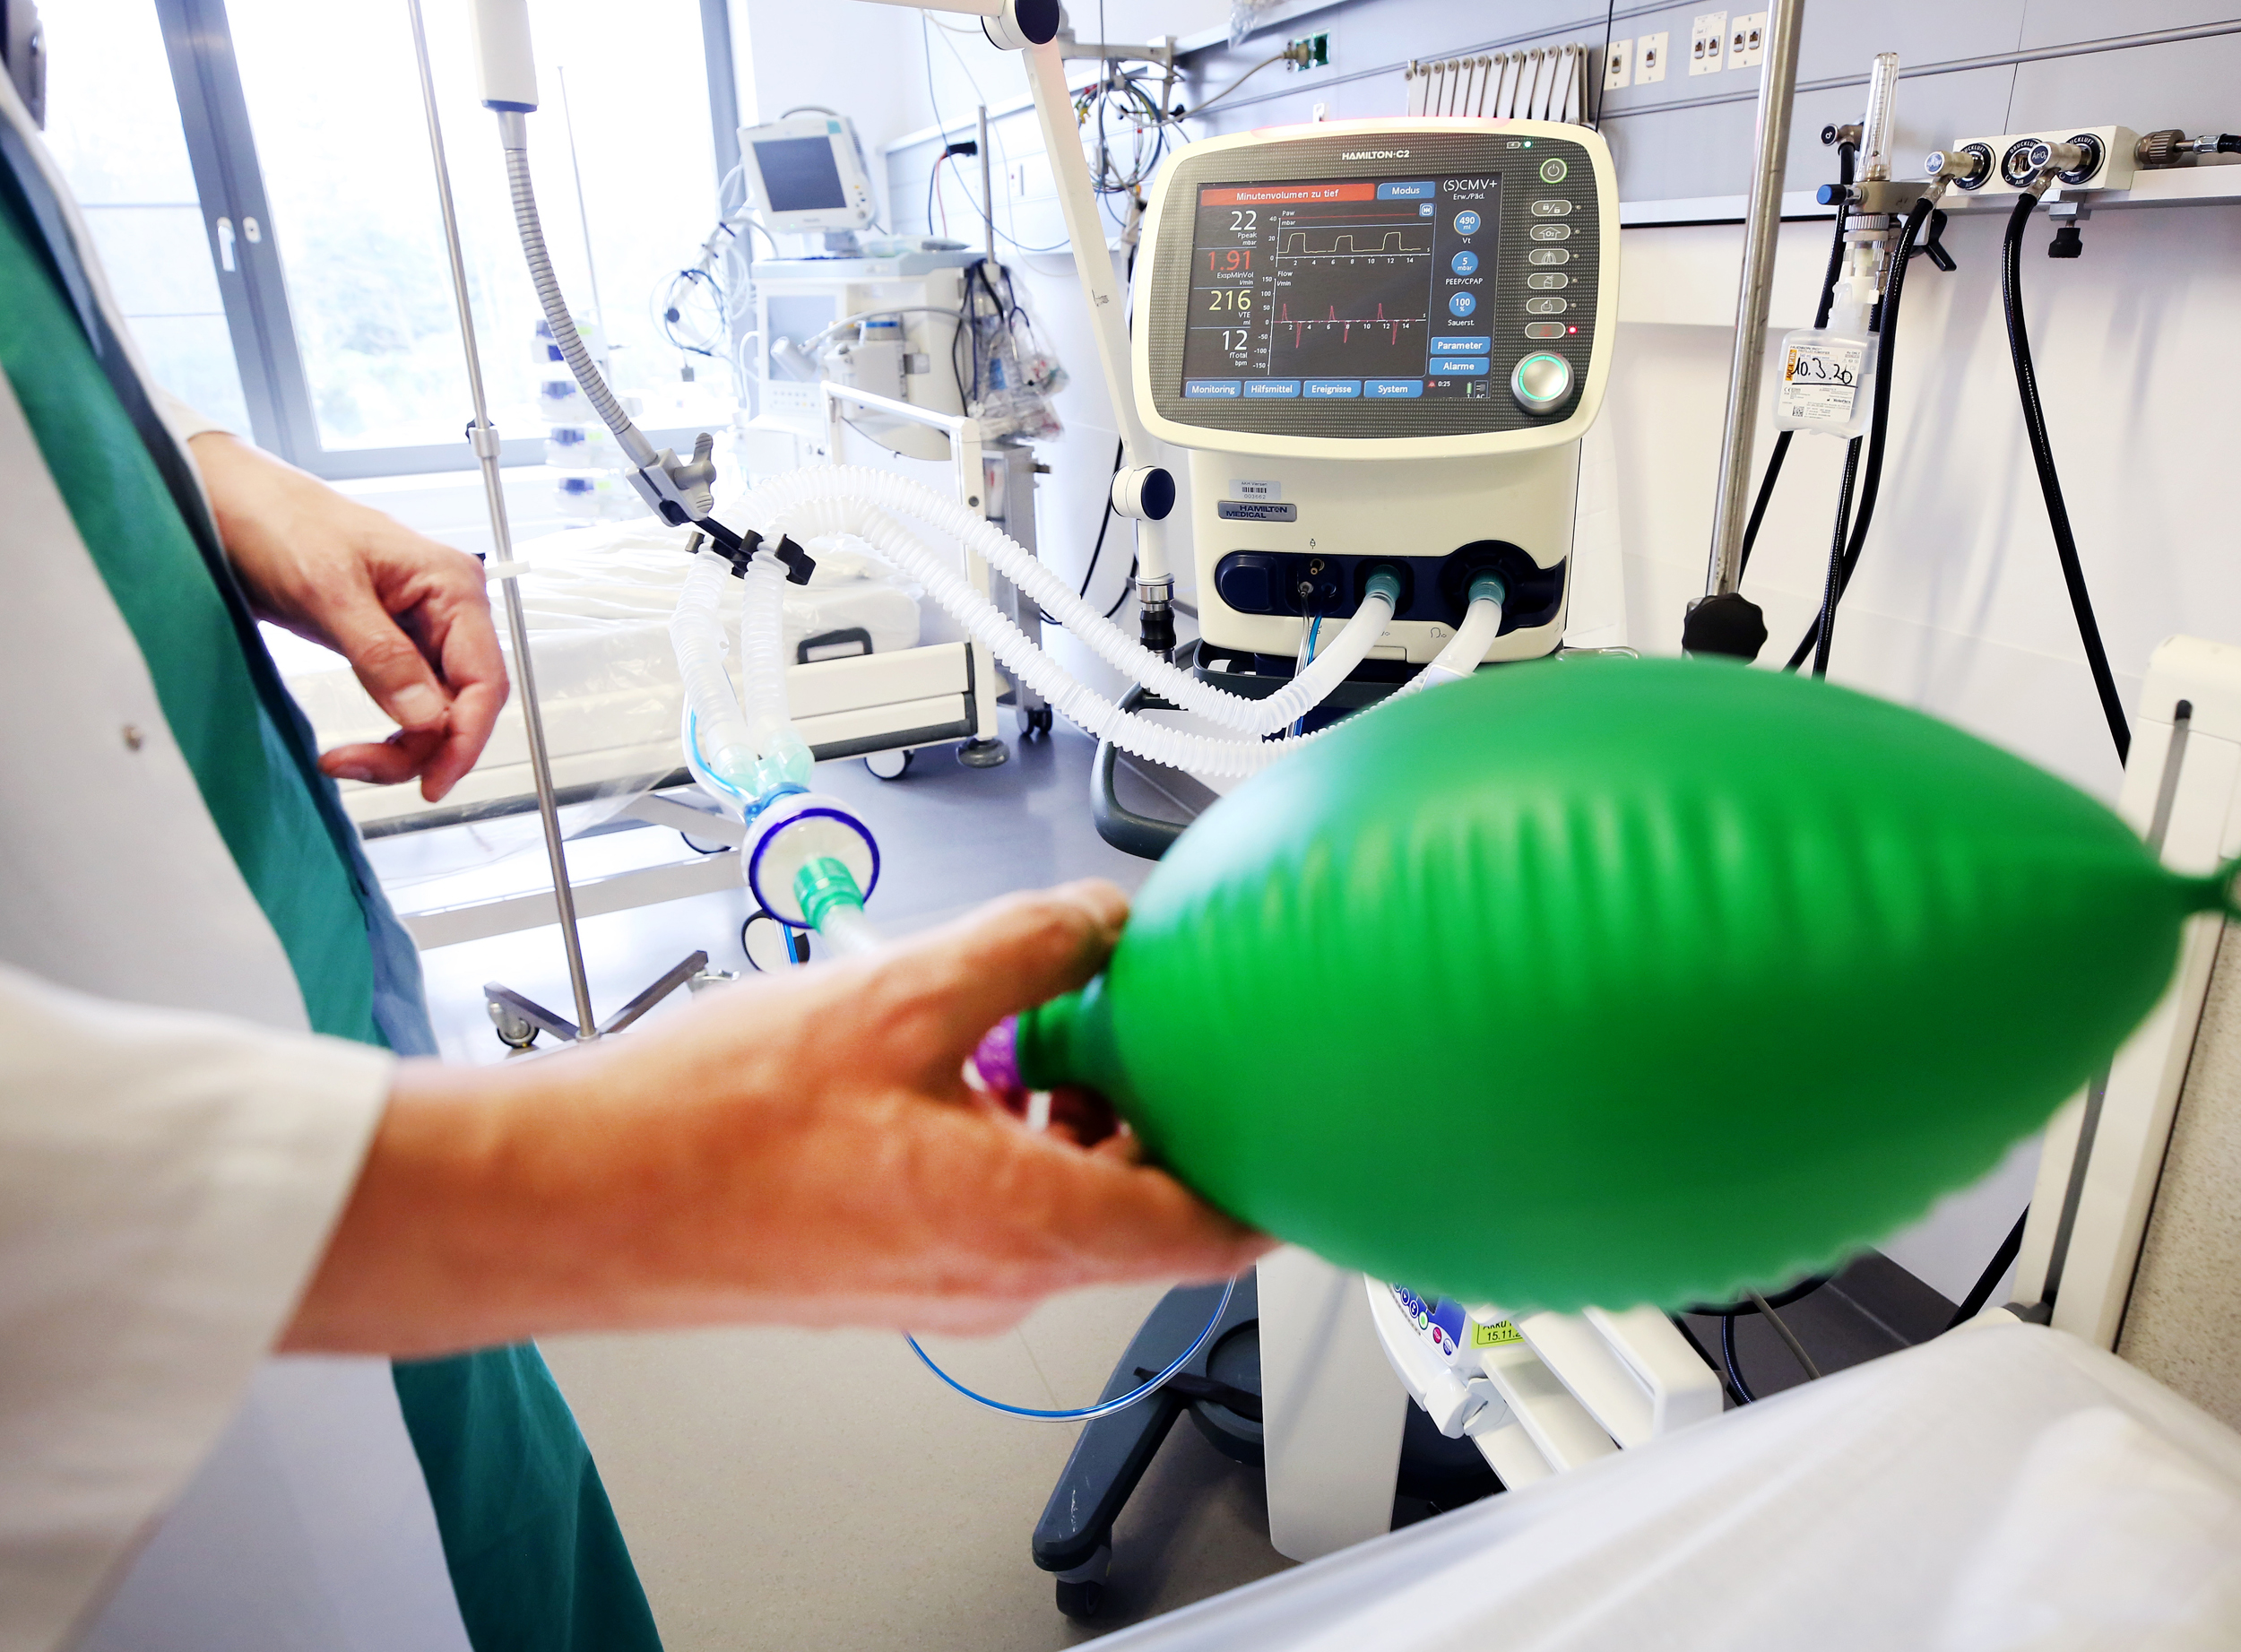 What is a ventilator? The 'critical resource' that is in short supply